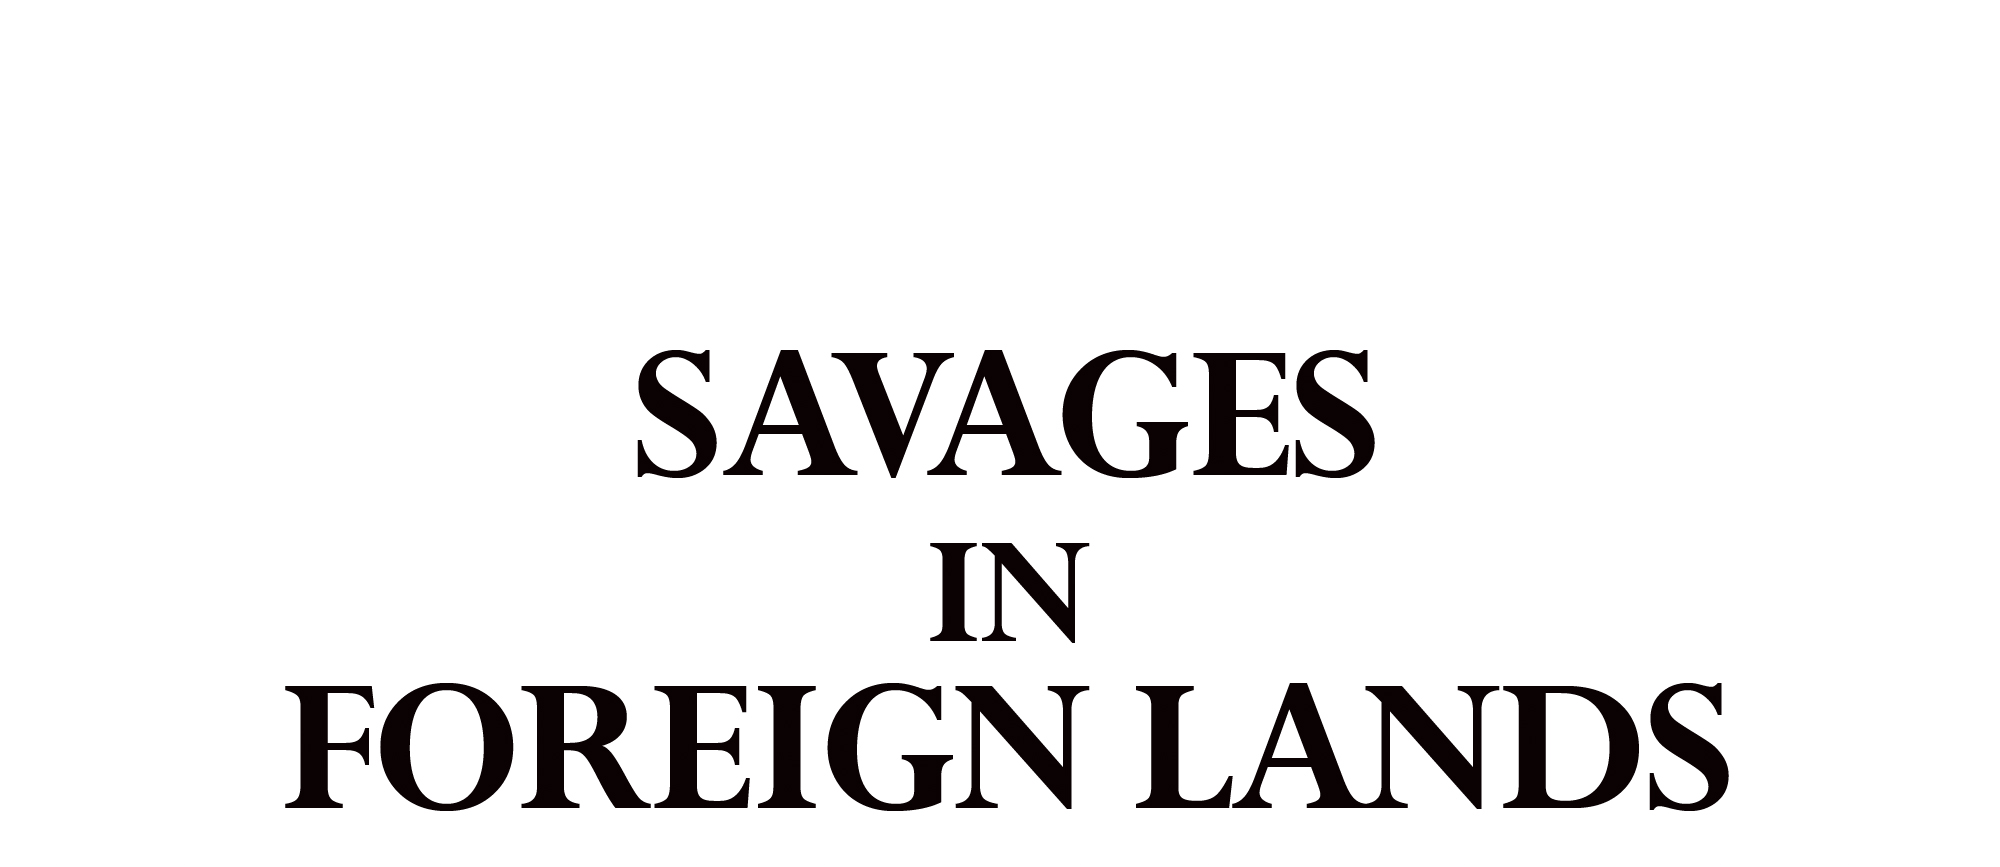 Savages in Foreign Lands